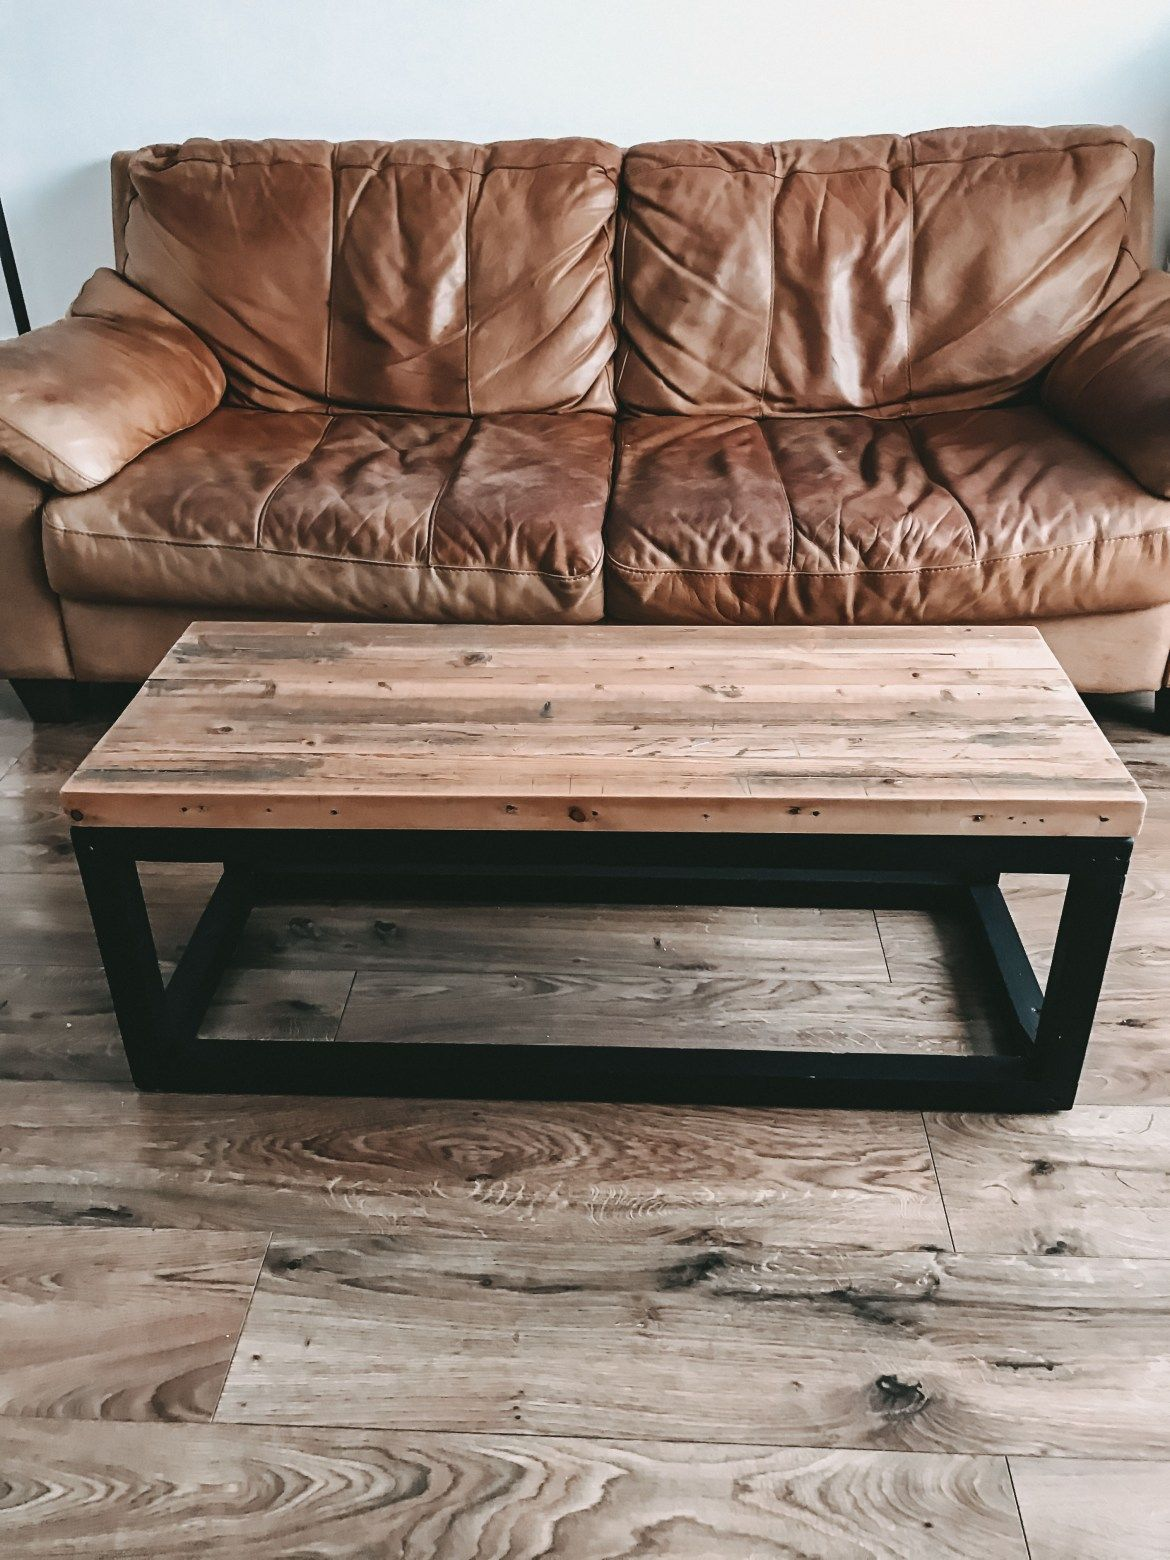 Rustic Apothecary Style Coffee Table Etsy Coffee Table Rustic Wooden Box Coffee Table With Storage [ 1512 x 2016 Pixel ]